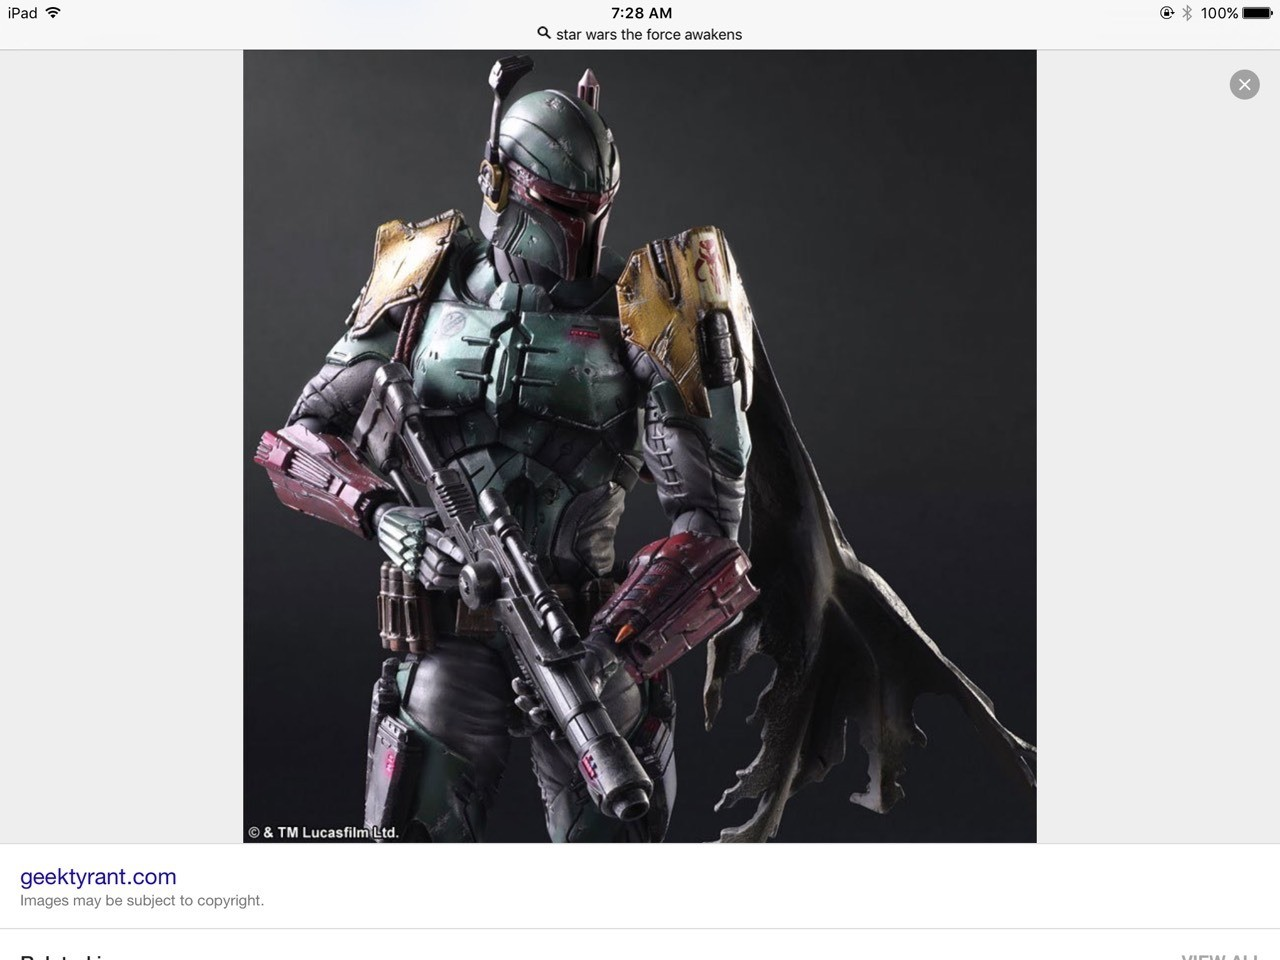 Bobba fett would look a lot cooler like this